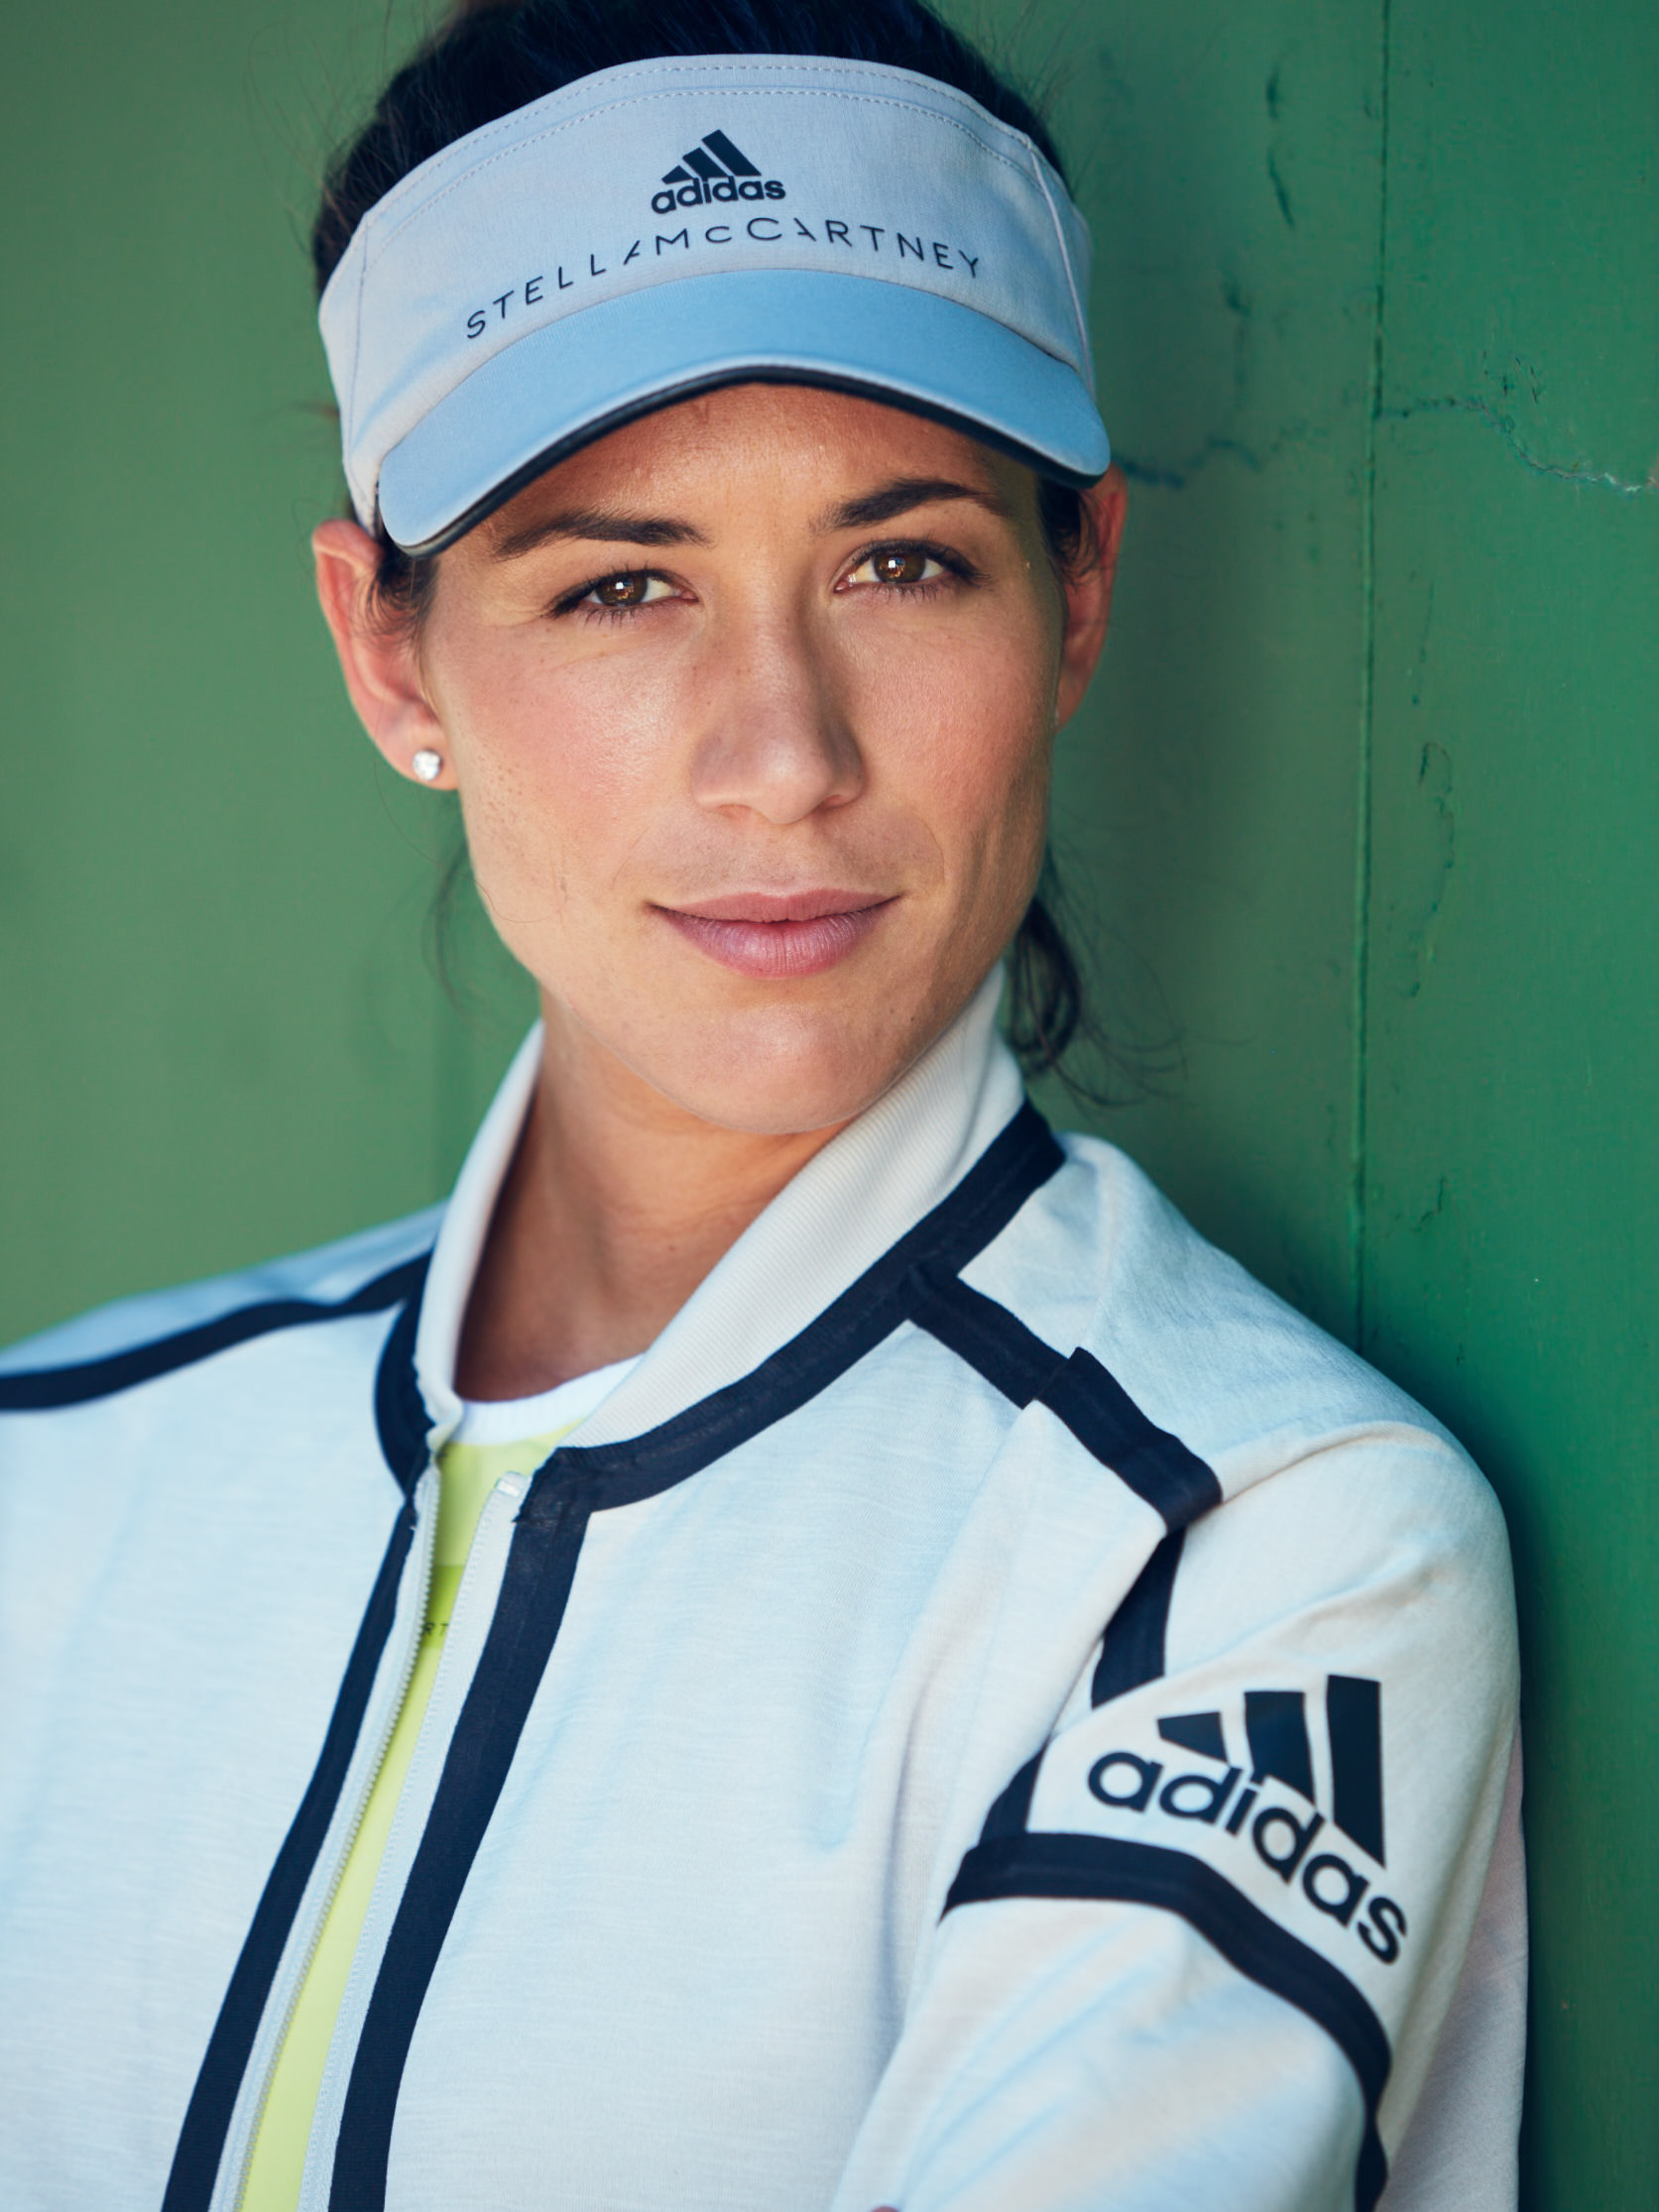 170913_Athletics_Singledout_Garbine_03_Green Wall_107.jpg